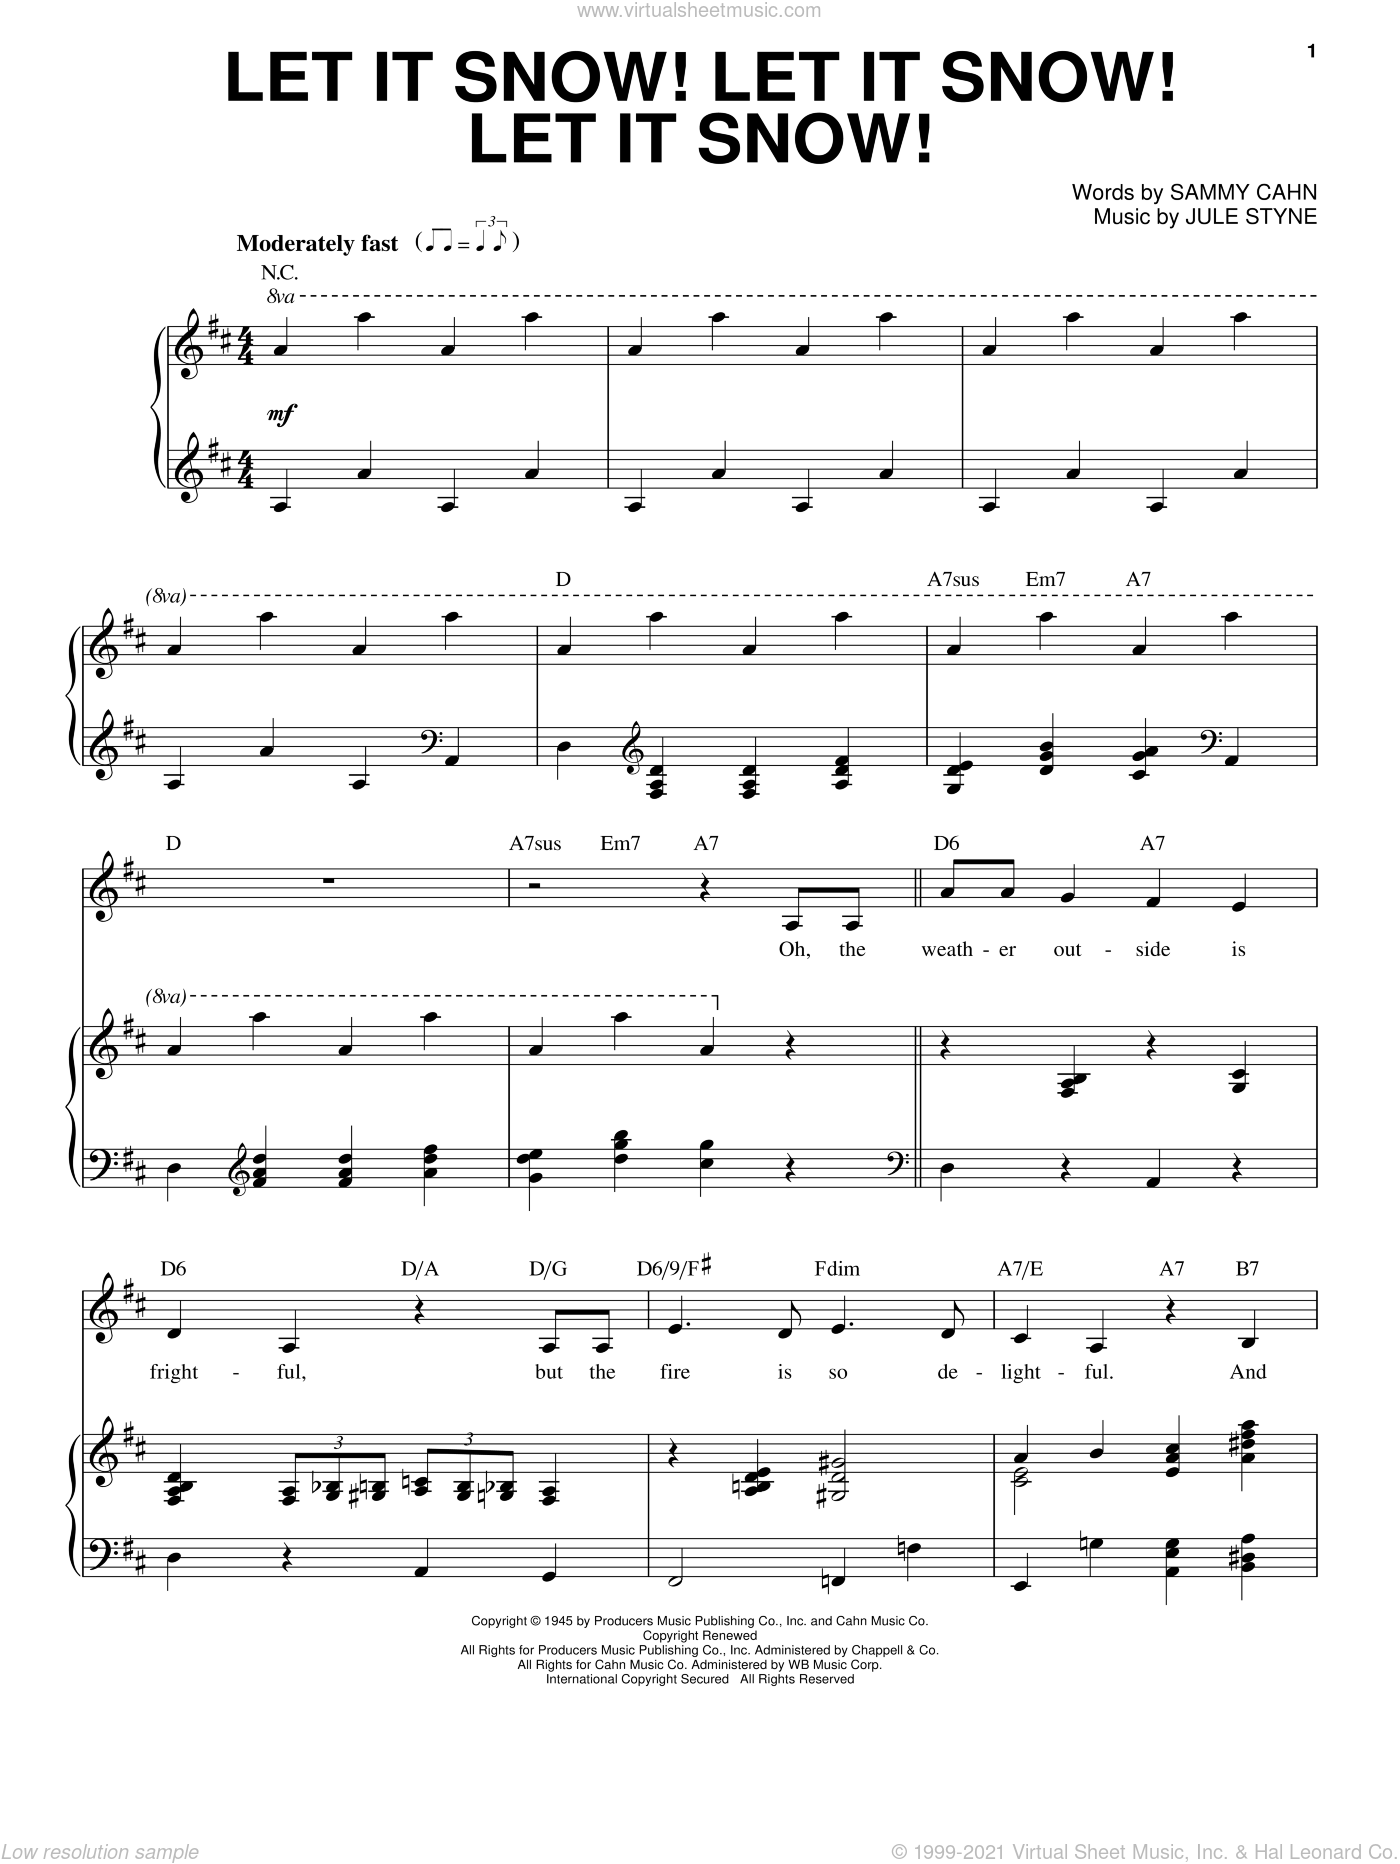 Let It Snow! Let It Snow! Let It Snow! sheet music for voice and piano by Martina McBride, Jule Styne and Sammy Cahn, intermediate skill level